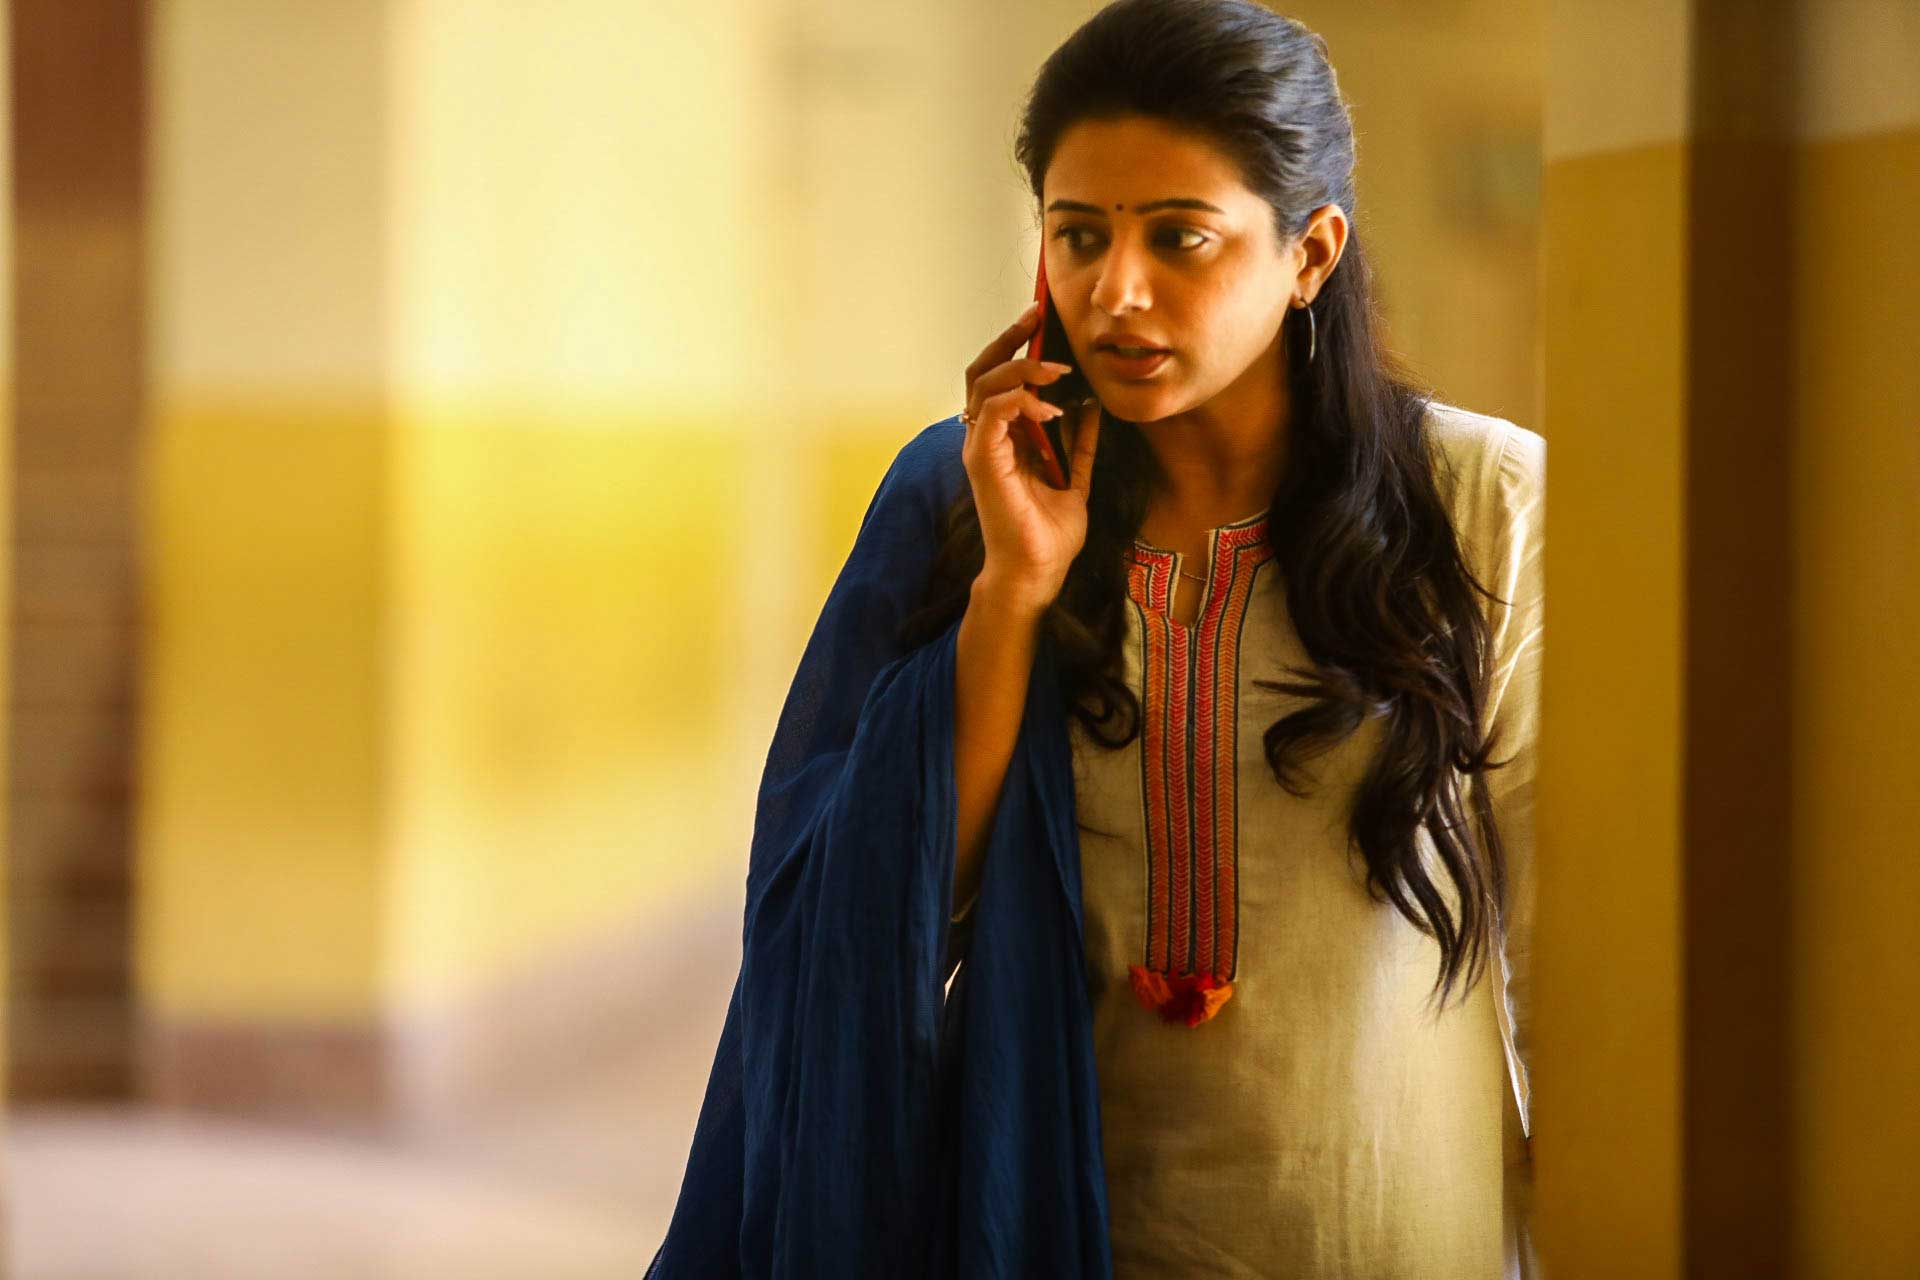 The Family Man S01E02 Still 2 - Priyamani